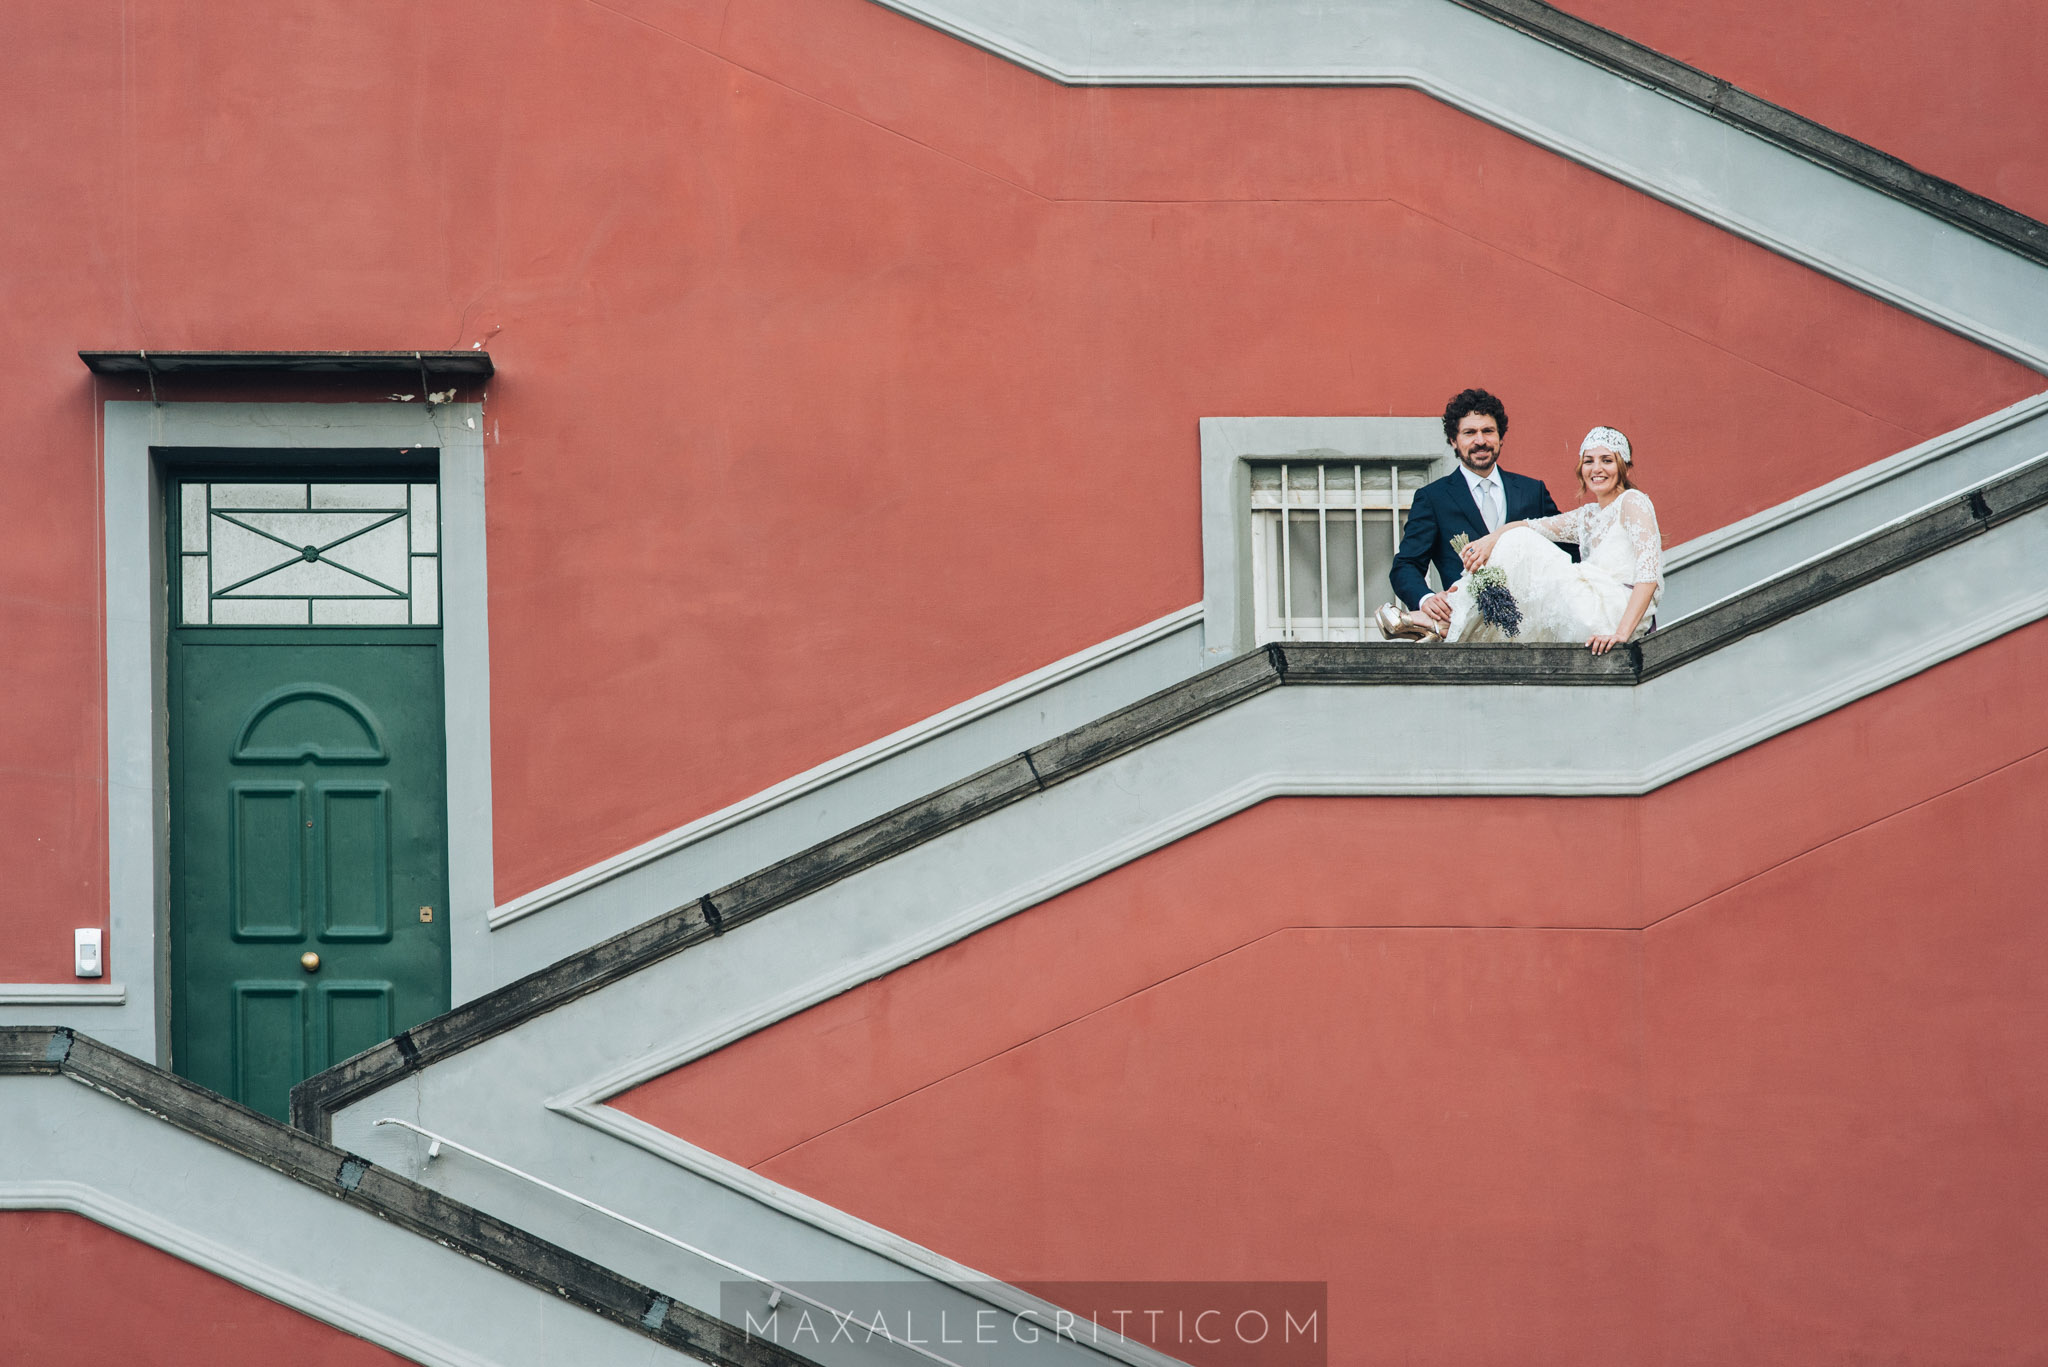 fotografo matrimonio napoli reporage wedding destination monza brianza milano fineart